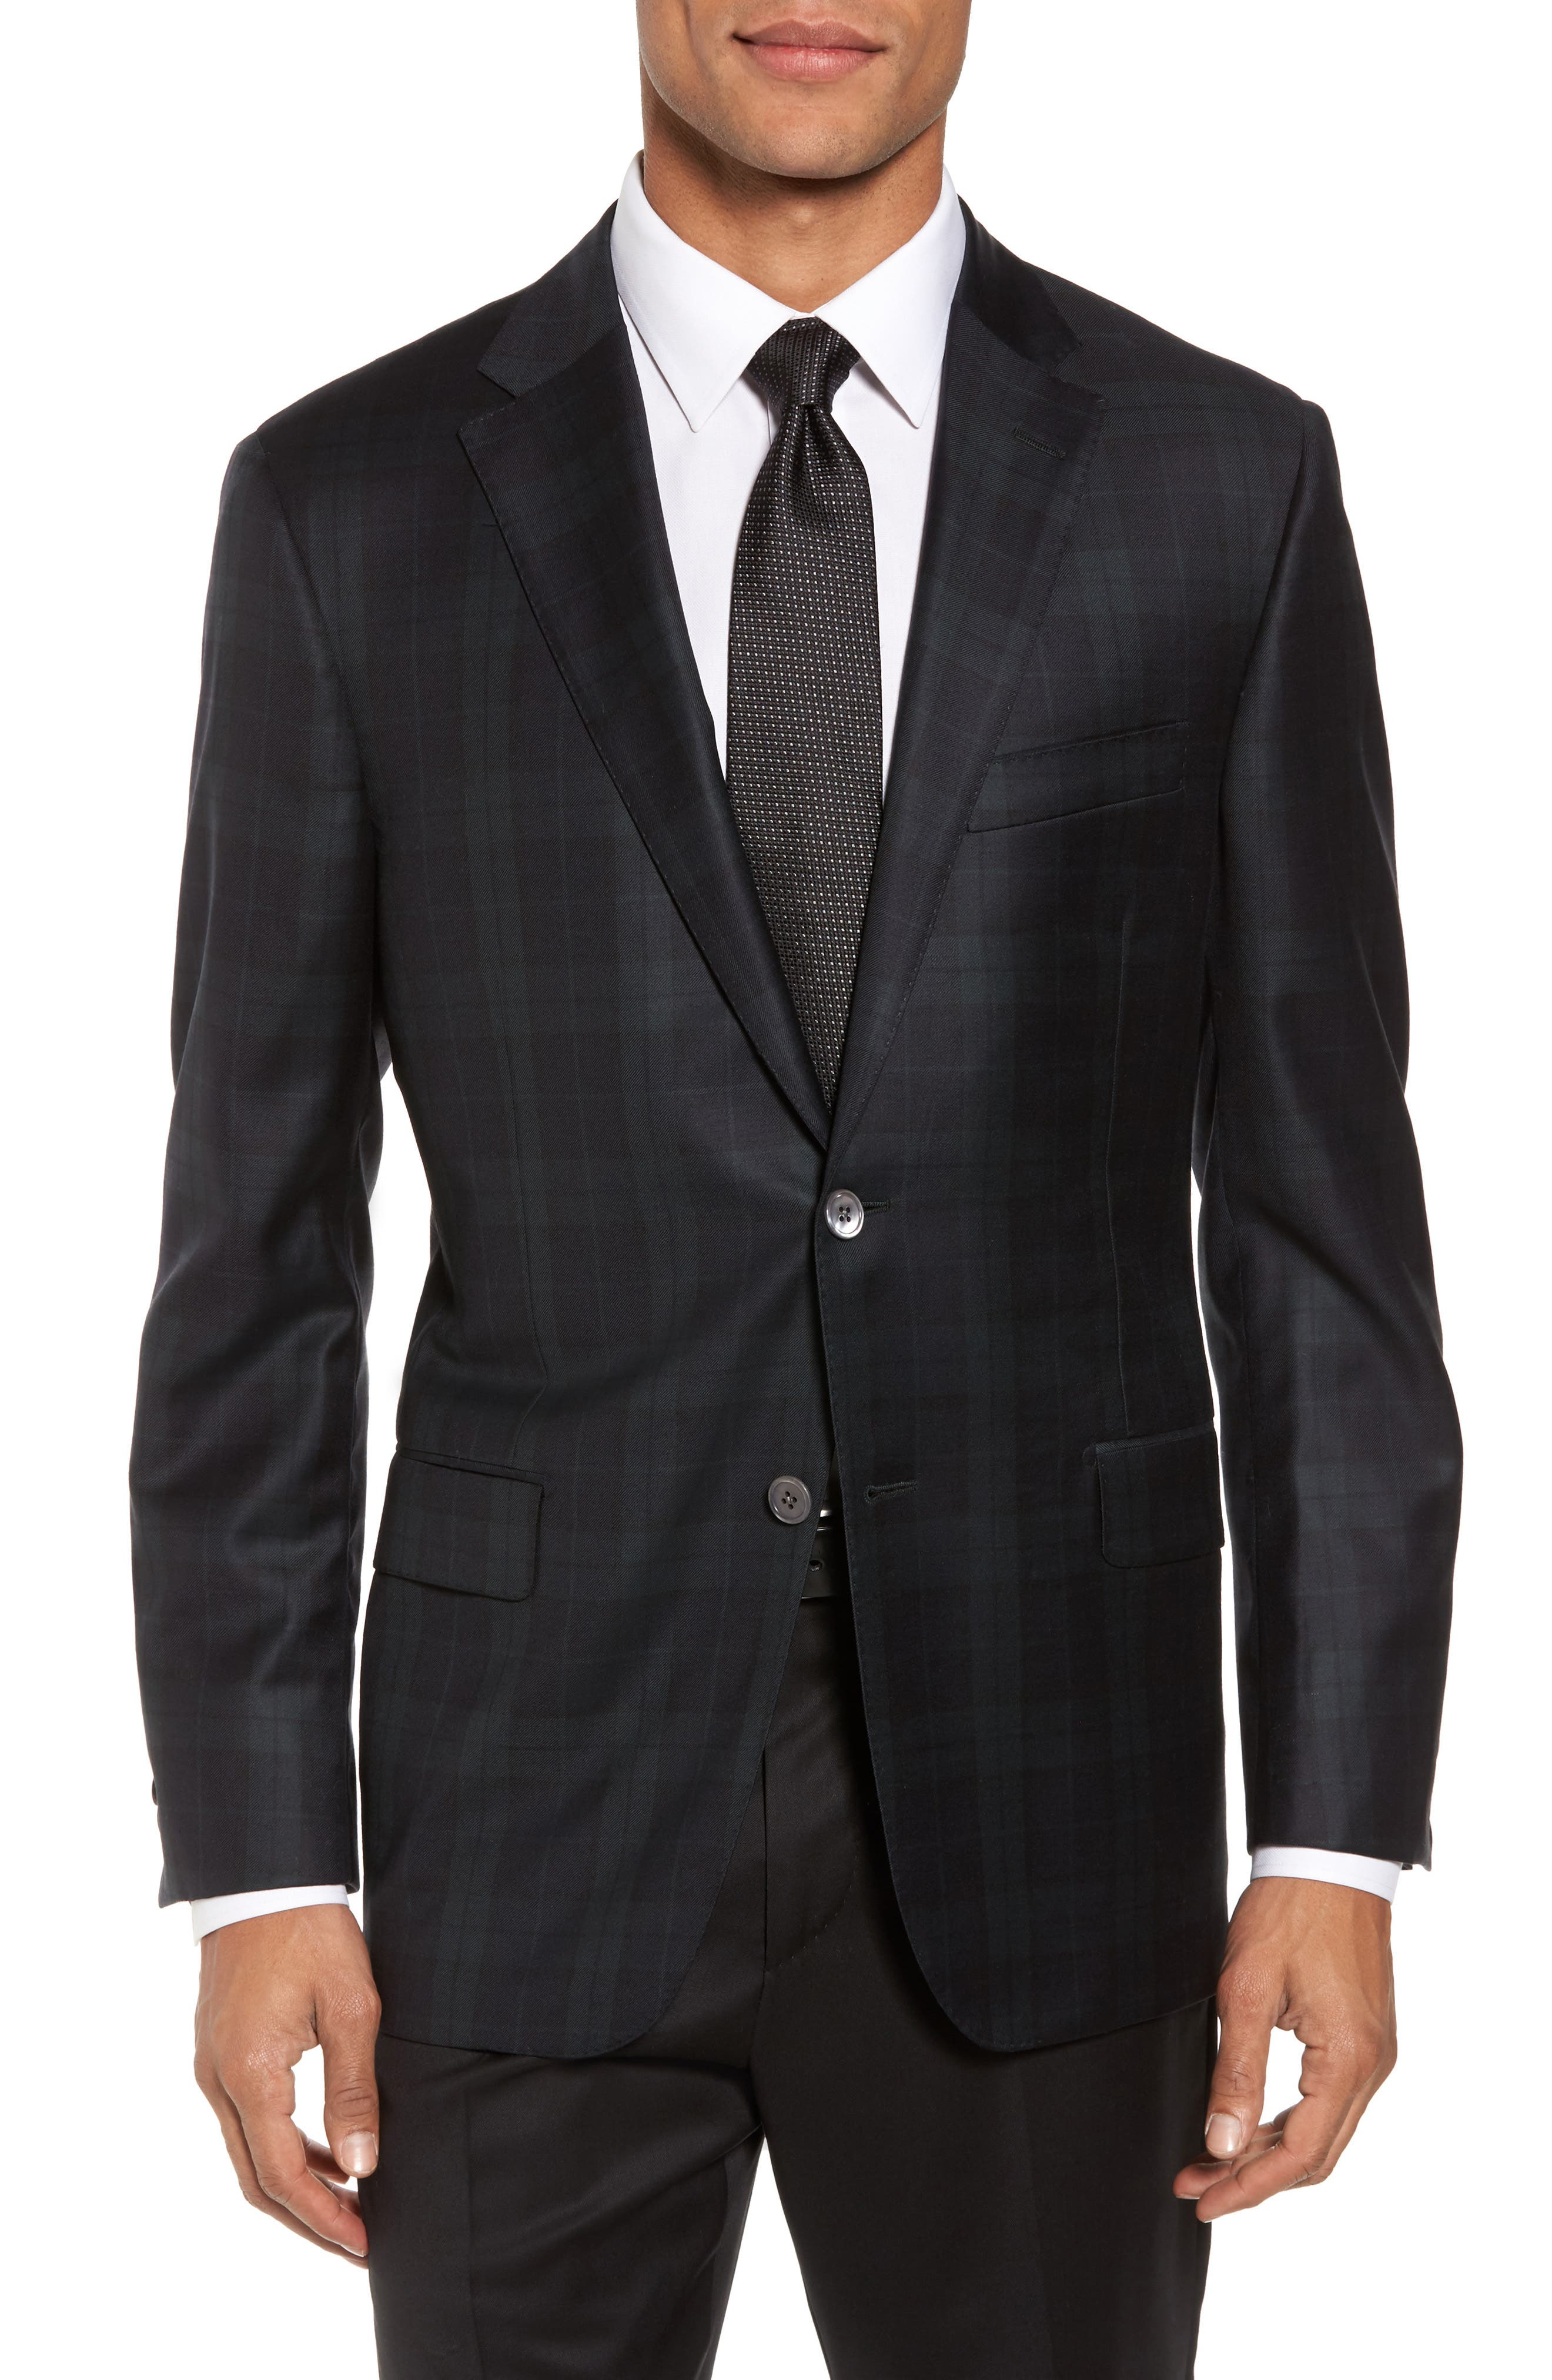 Alternate Image 1 Selected - Hickey Freeman Classic B Fit Plaid Wool Dinner Jacket